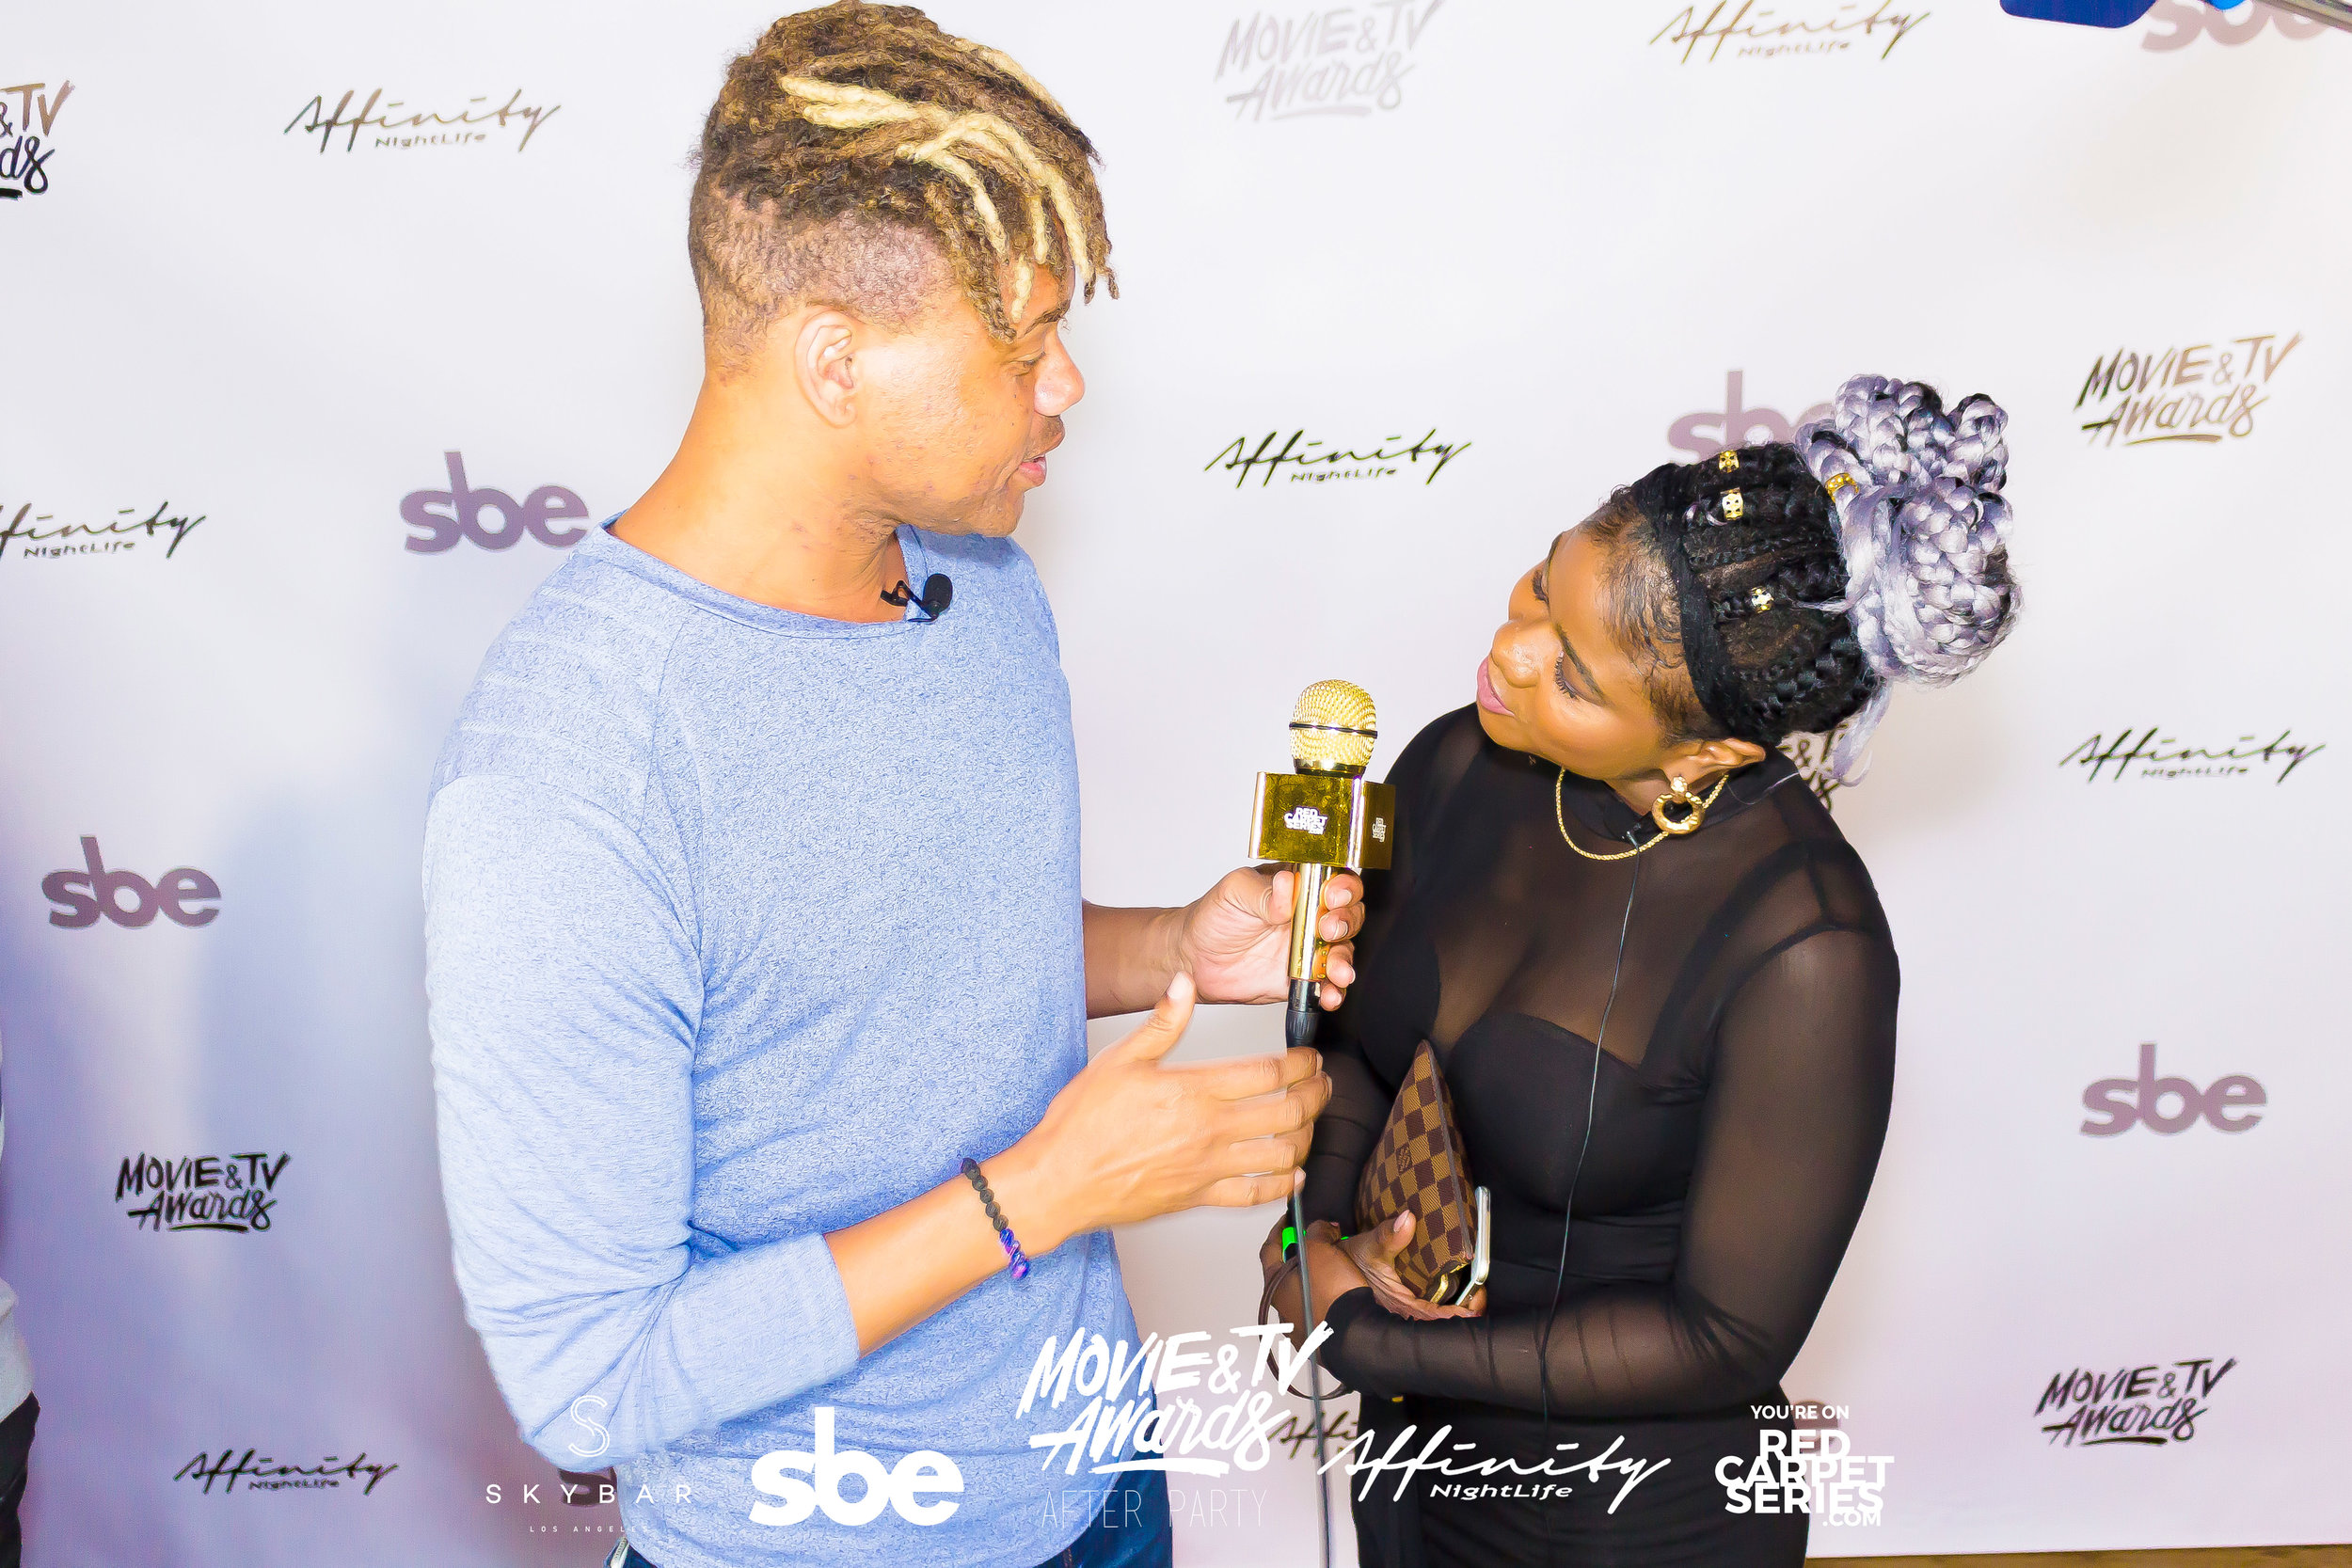 Affinity Nightlife MTV Movie & TV Awards After Party - Skybar at Mondrian - 06-15-19 - Vol. 1_115.jpg